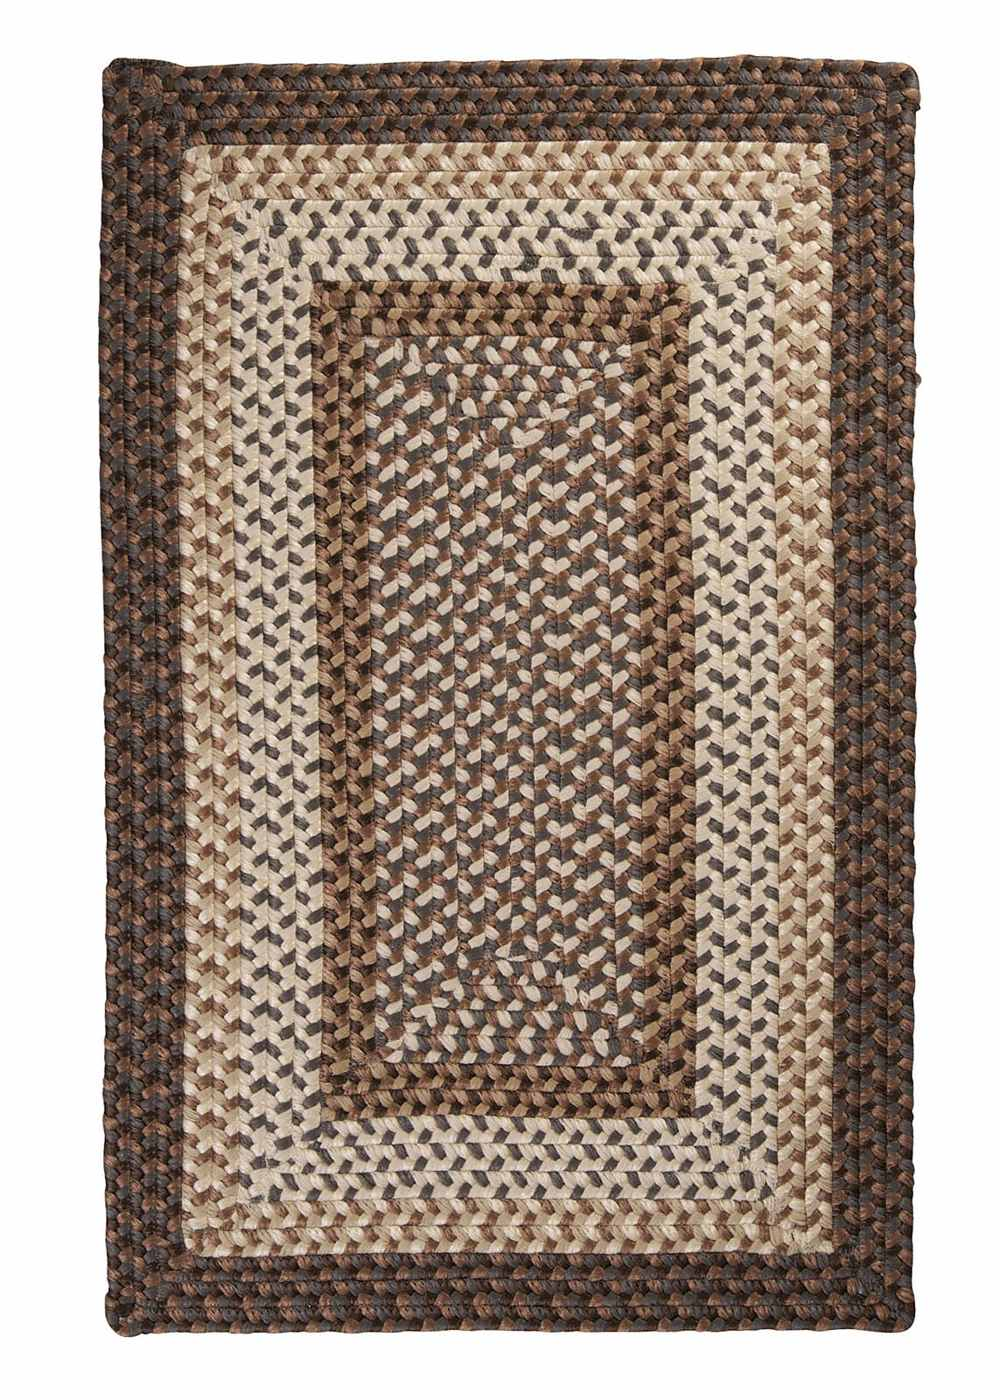 Super Area Rugs 7ft. x 9ft. Indoor/Outdoor Reversible Braided Rug Dockside Color (7x9) at Sears.com